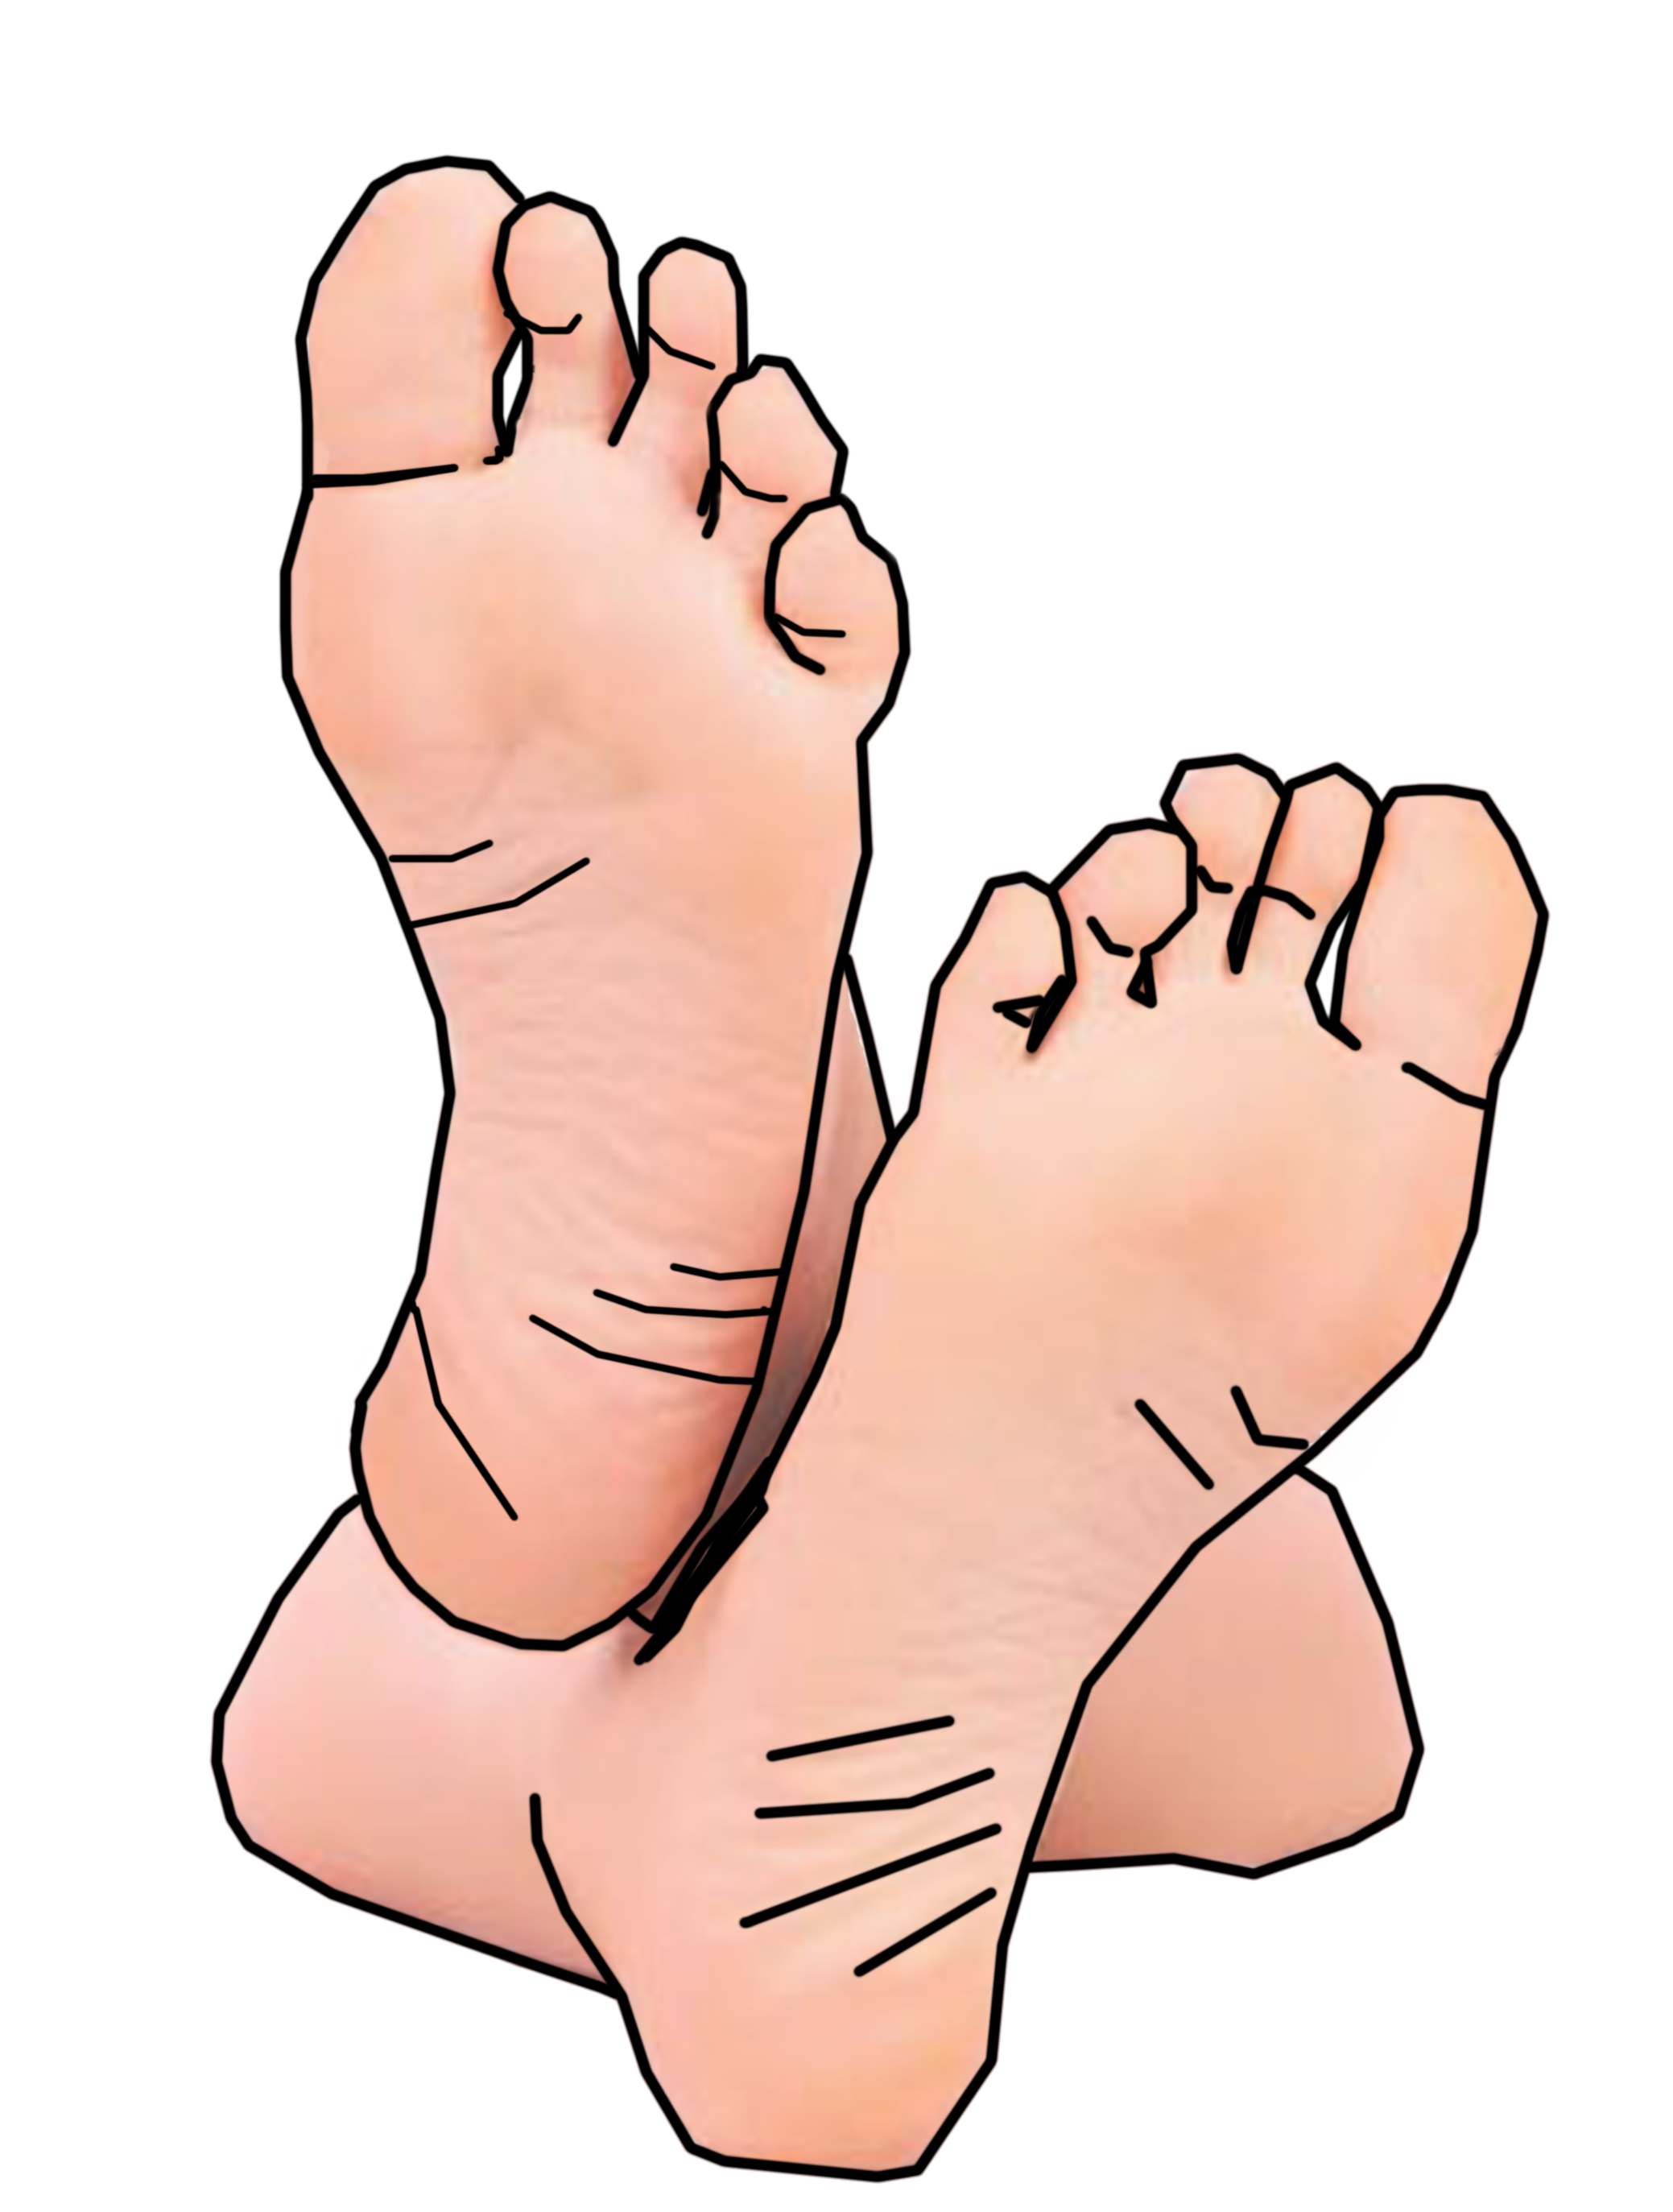 Feetsies image - vector clip art online, royalty free & public domain